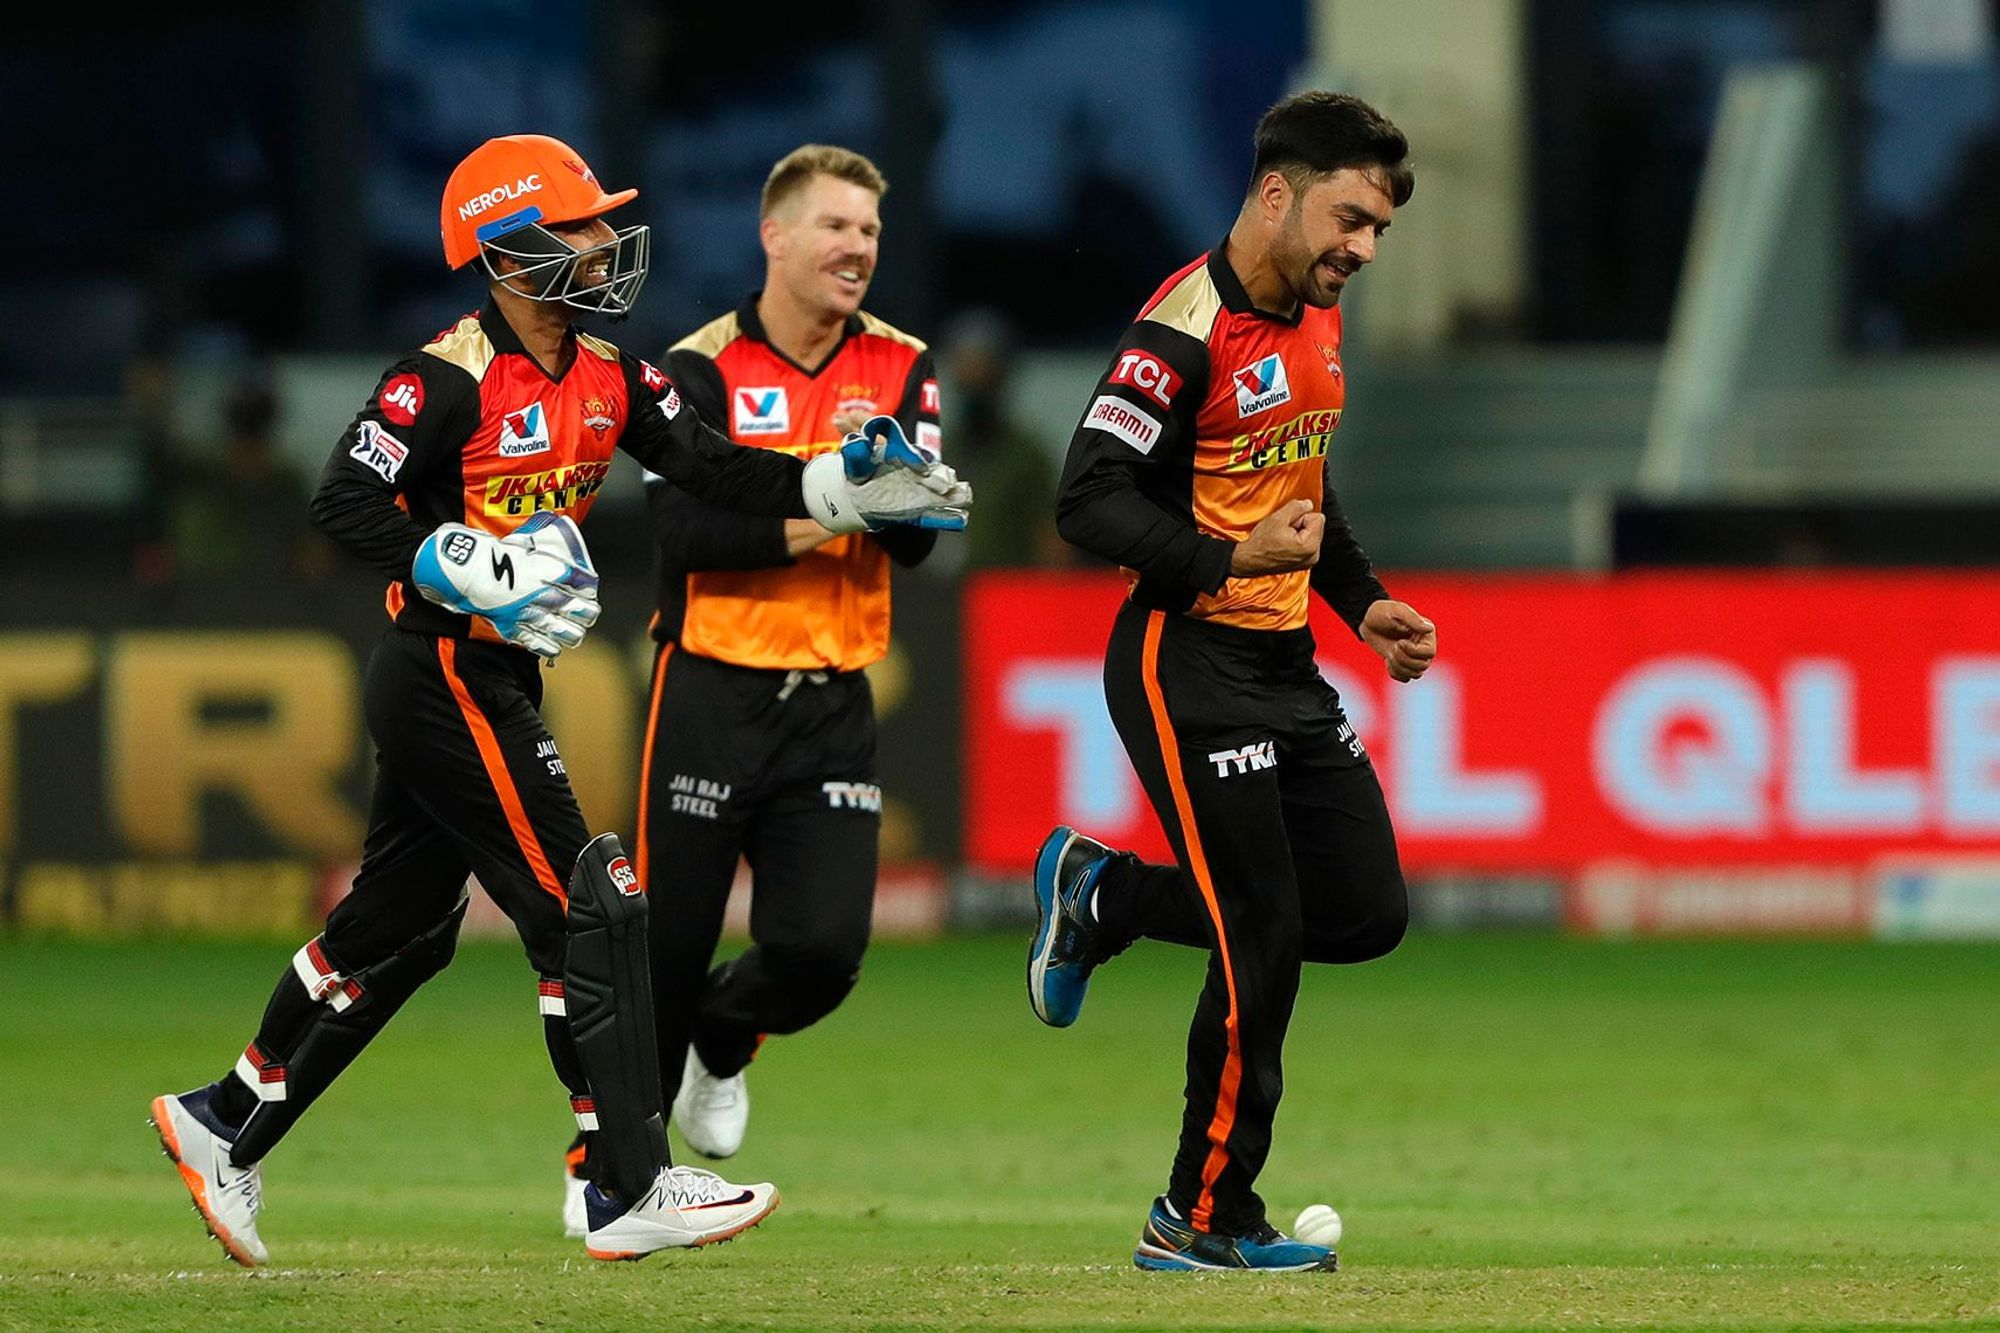 IPL 2020: In Pics, Sunrisers Hyderabad vs Delhi Capitals, Match 47 at Dubai